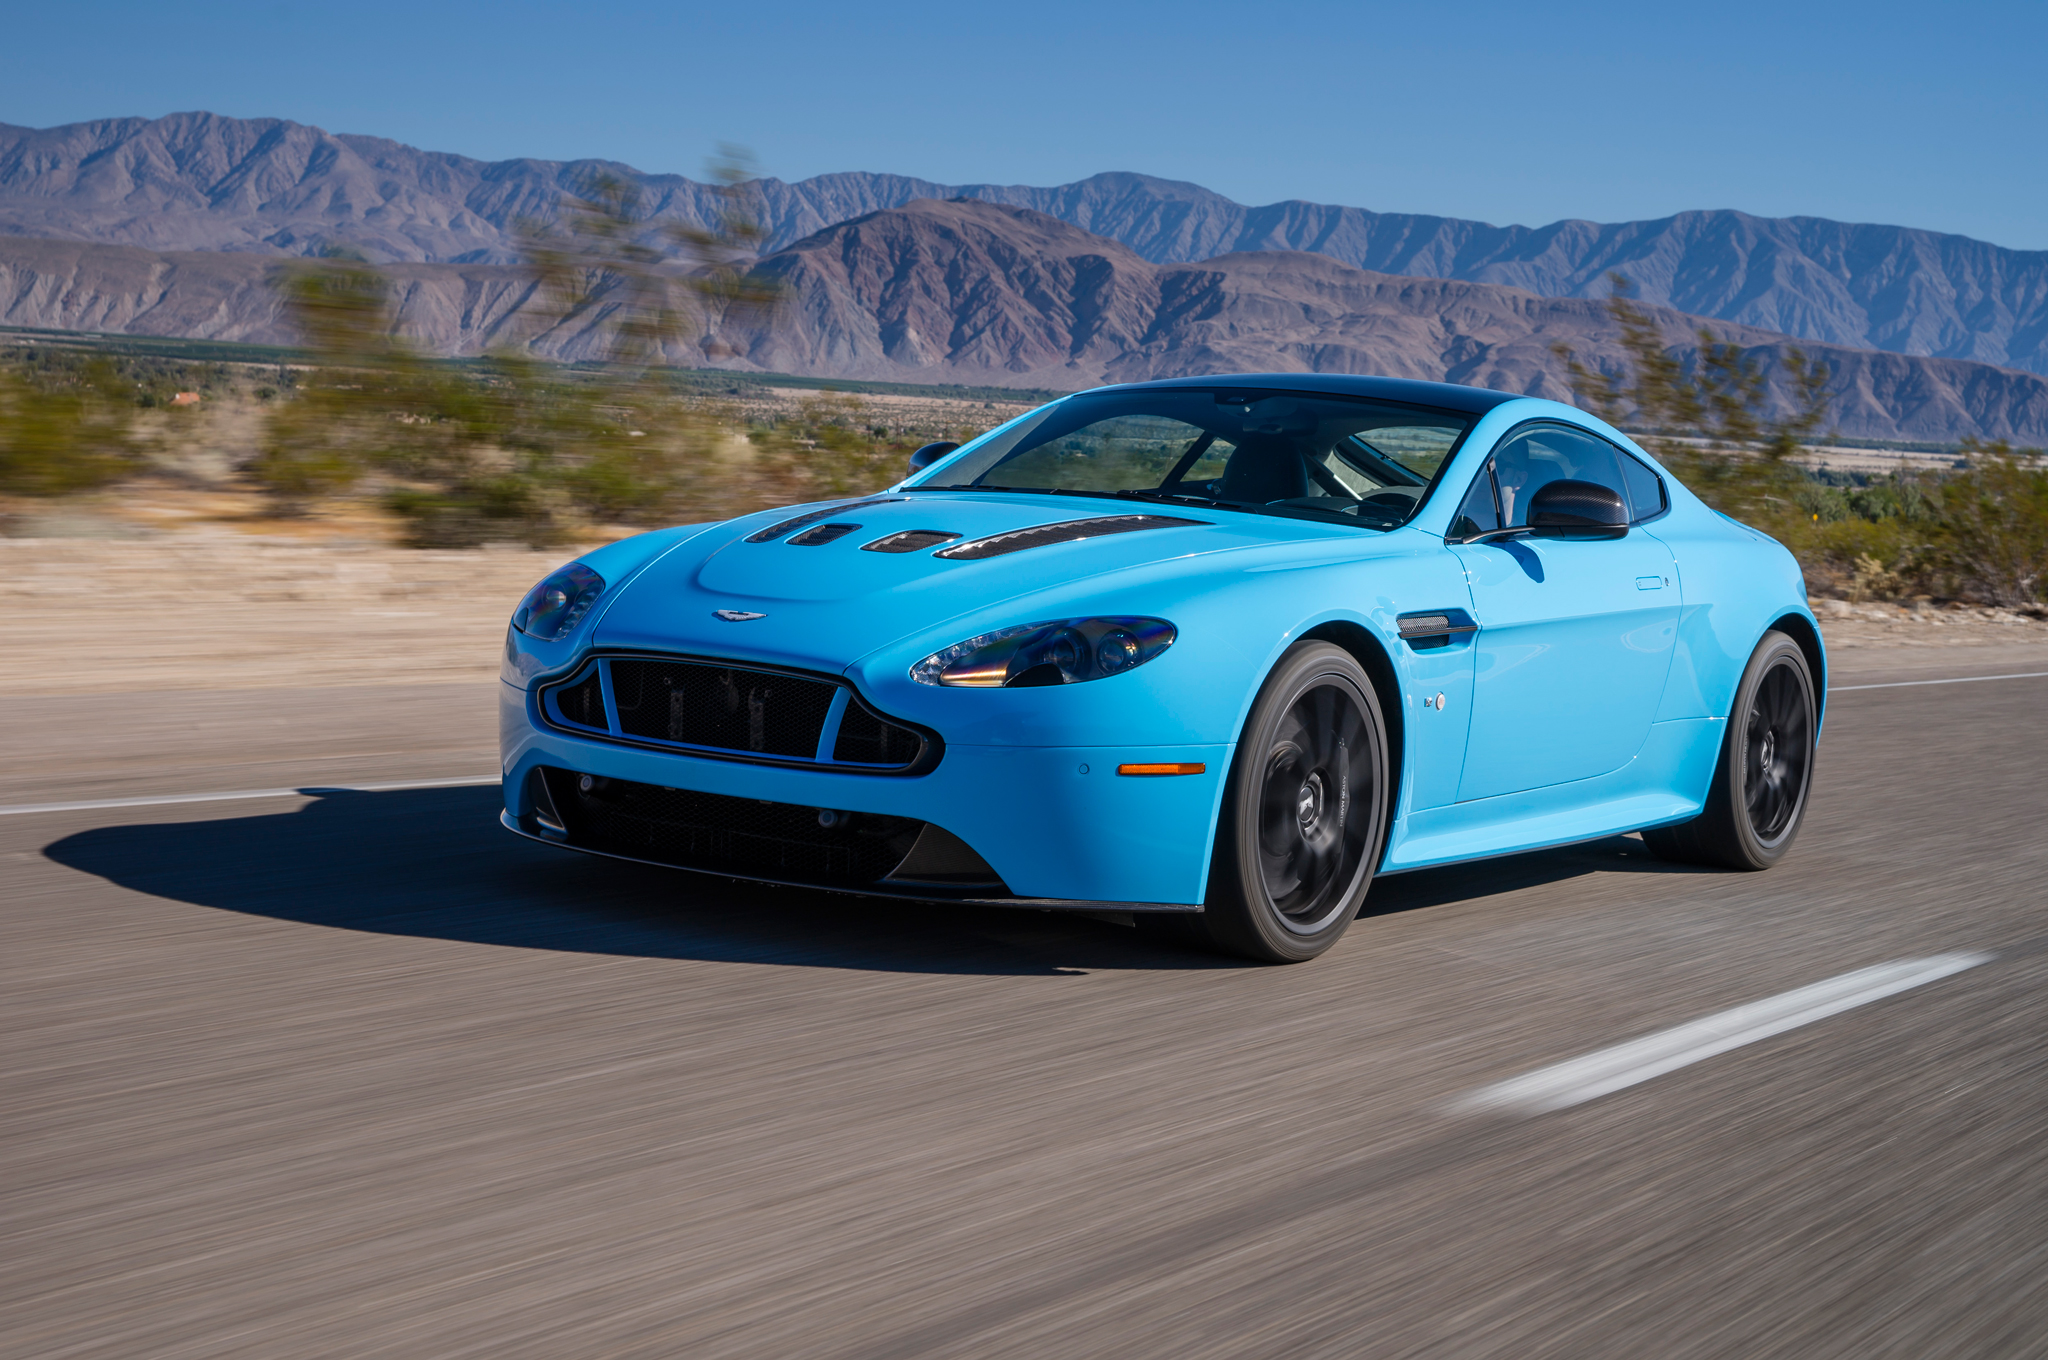 2048x1360 > Aston Martin V12 Vantage Wallpapers